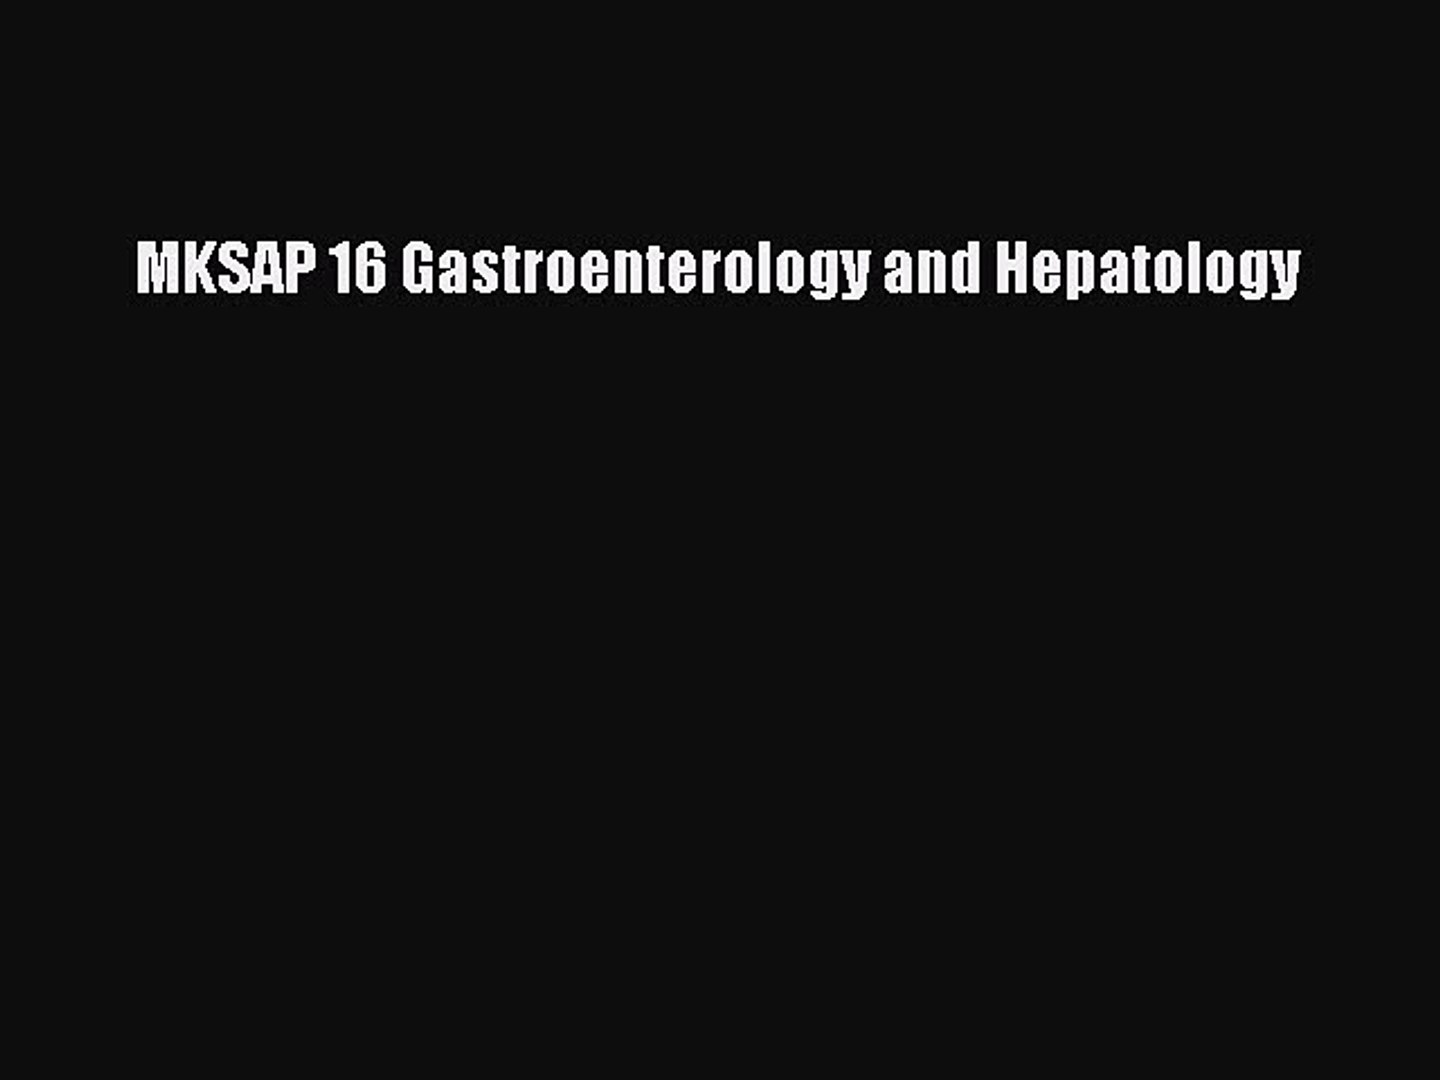 Read MKSAP 16 Gastroenterology and Hepatology Ebook Online